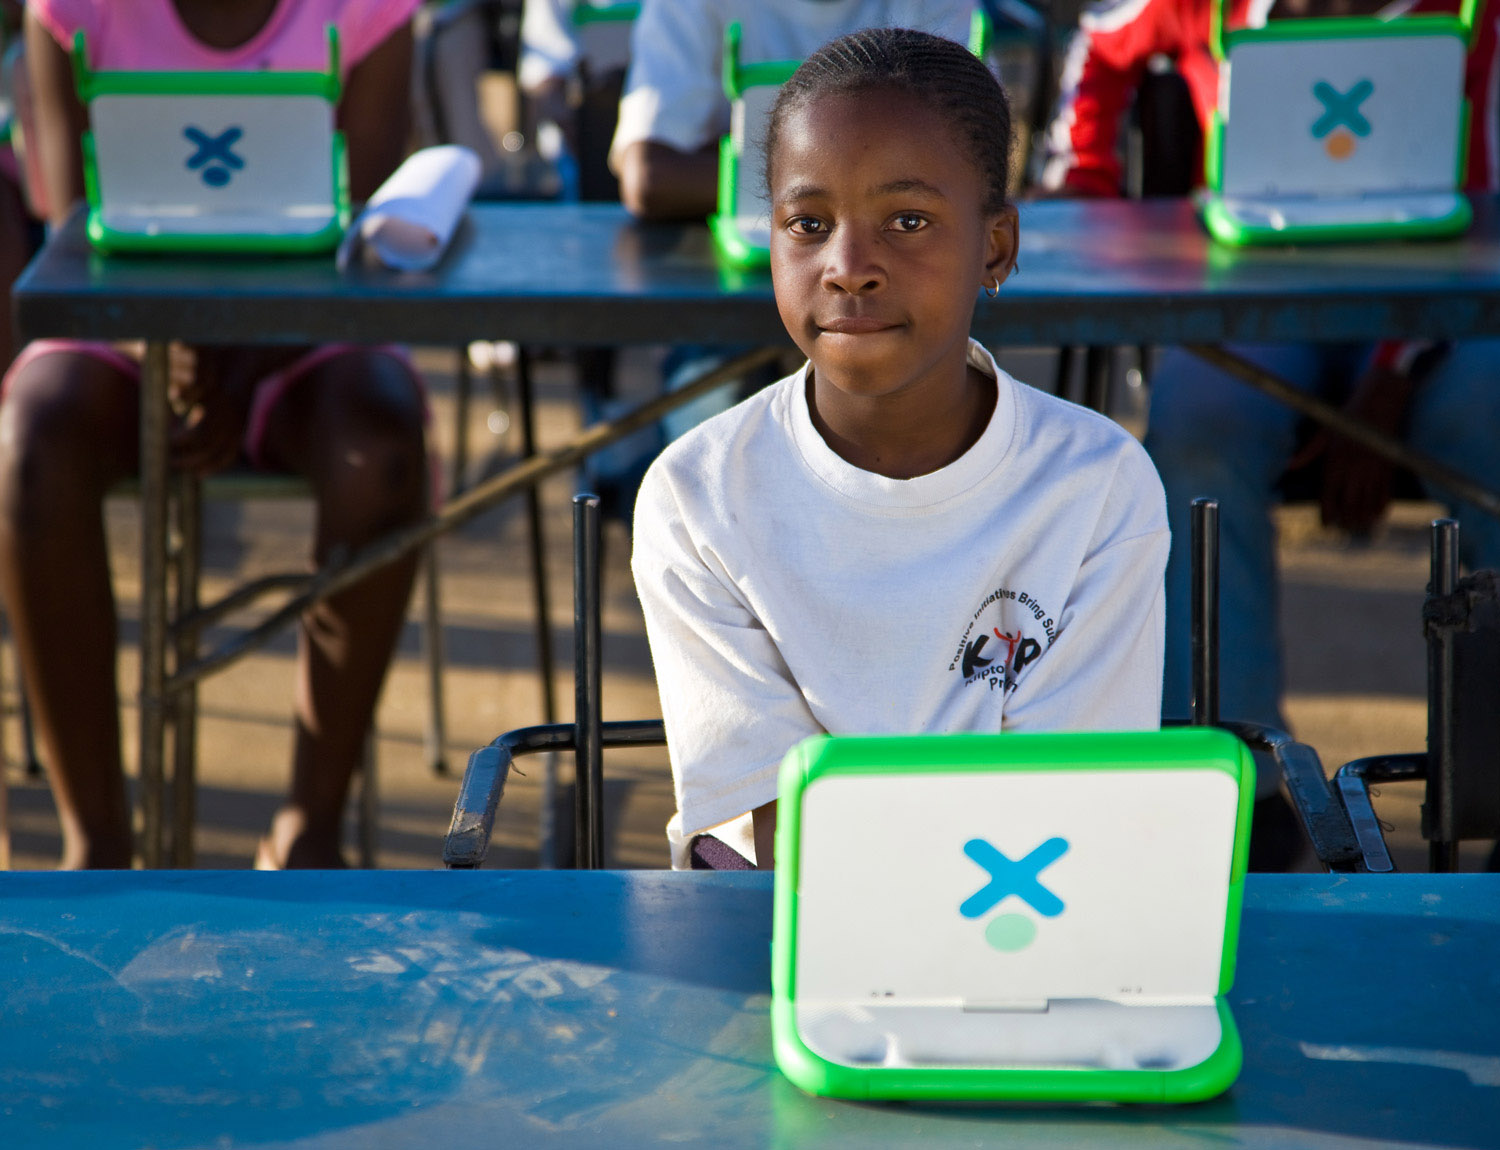 Student with OLPC Laptop